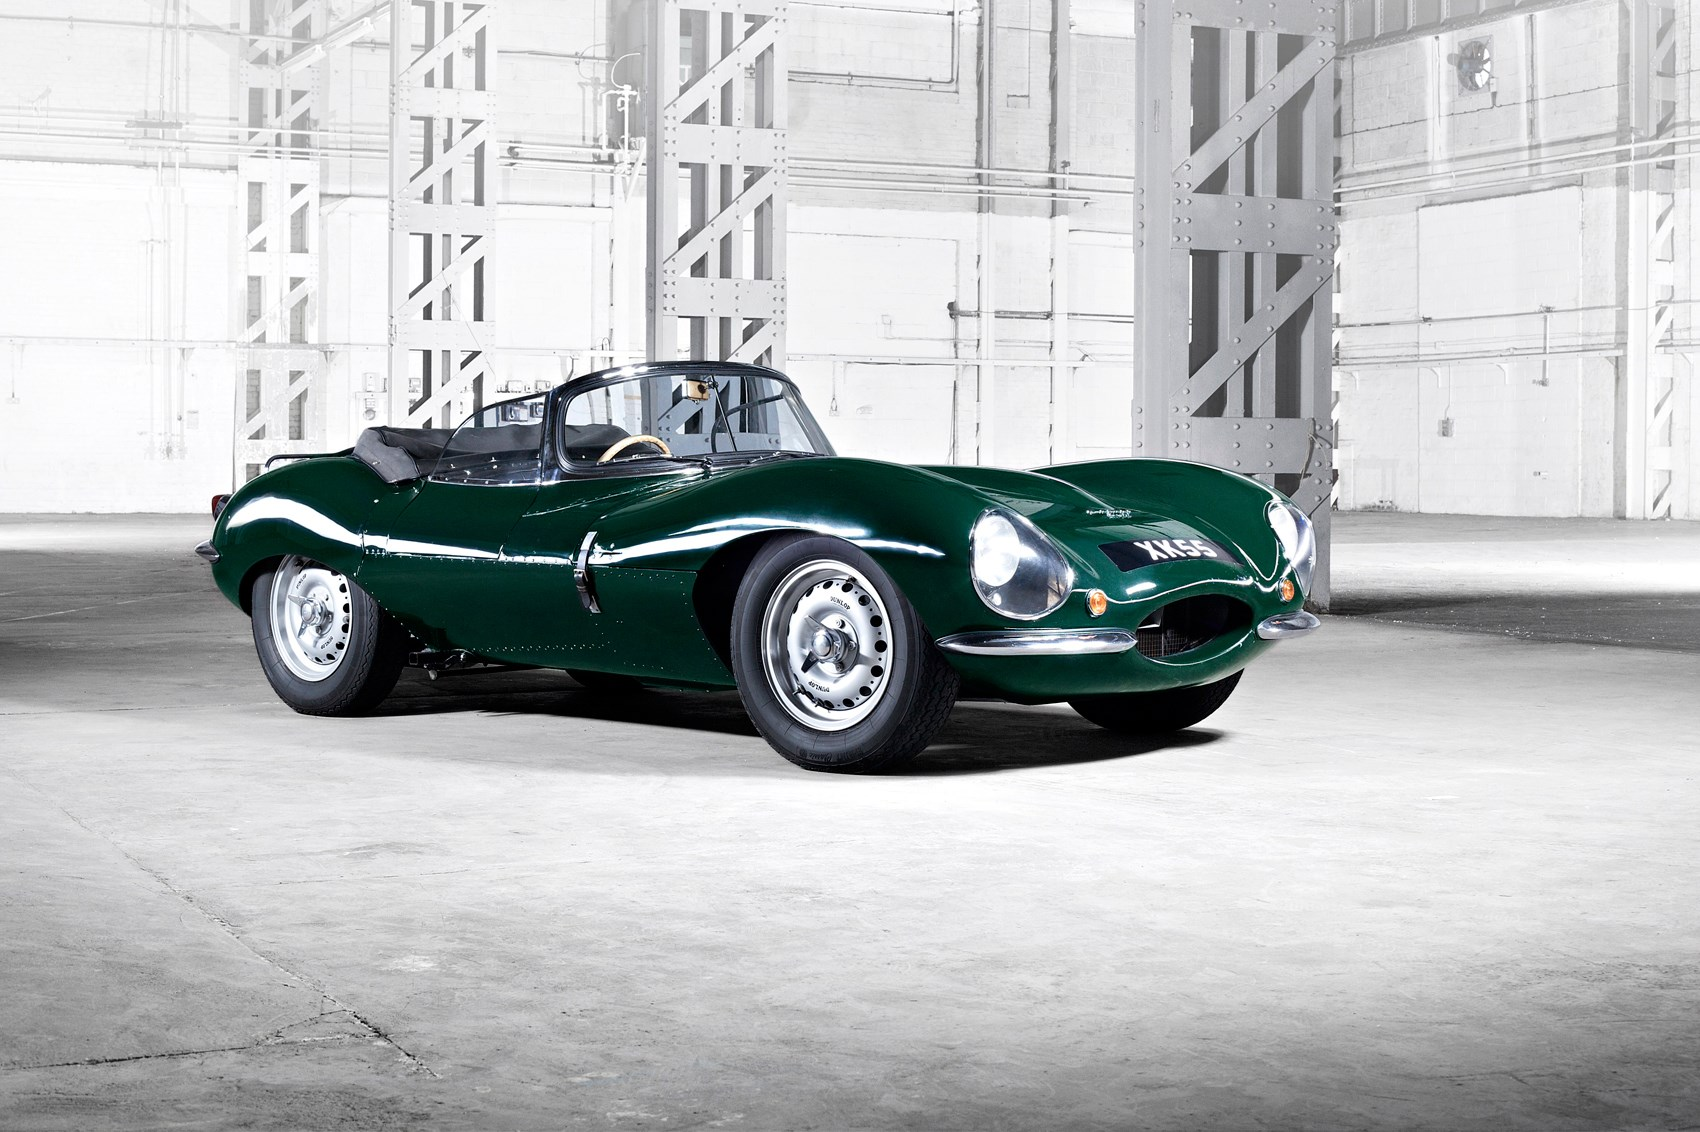 new release jaguar carJaguar goes back to the past nine new Jaguar XKSS road cars to